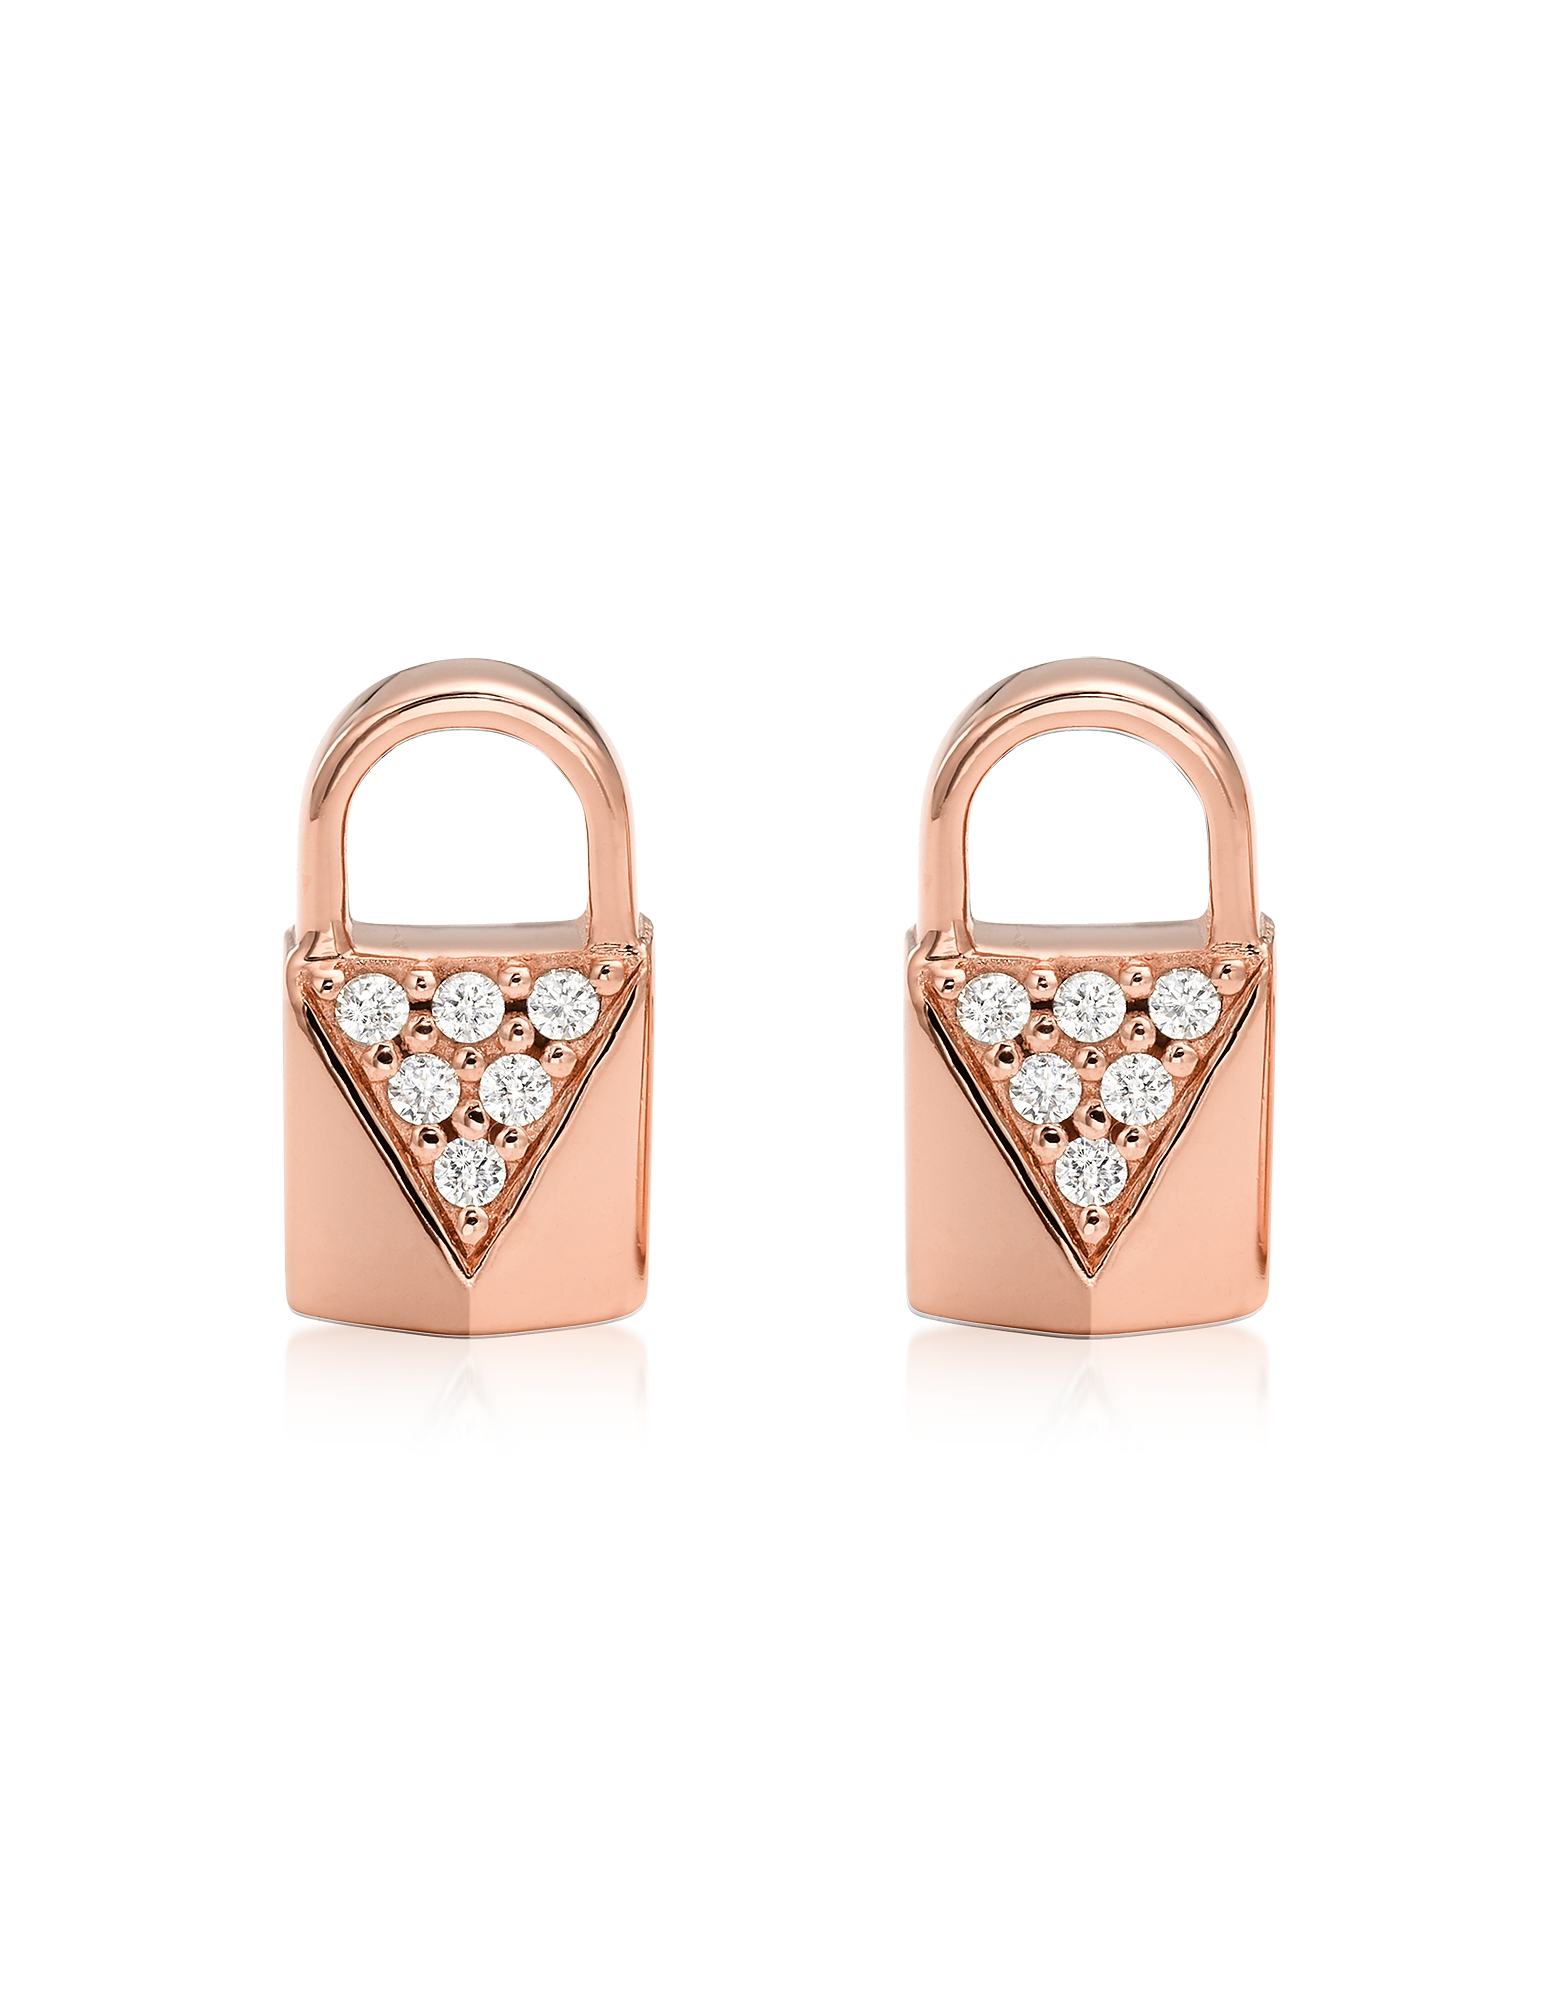 Mercer Lock 14K Rose Gold Plated Sterling Silver Pavé Studs